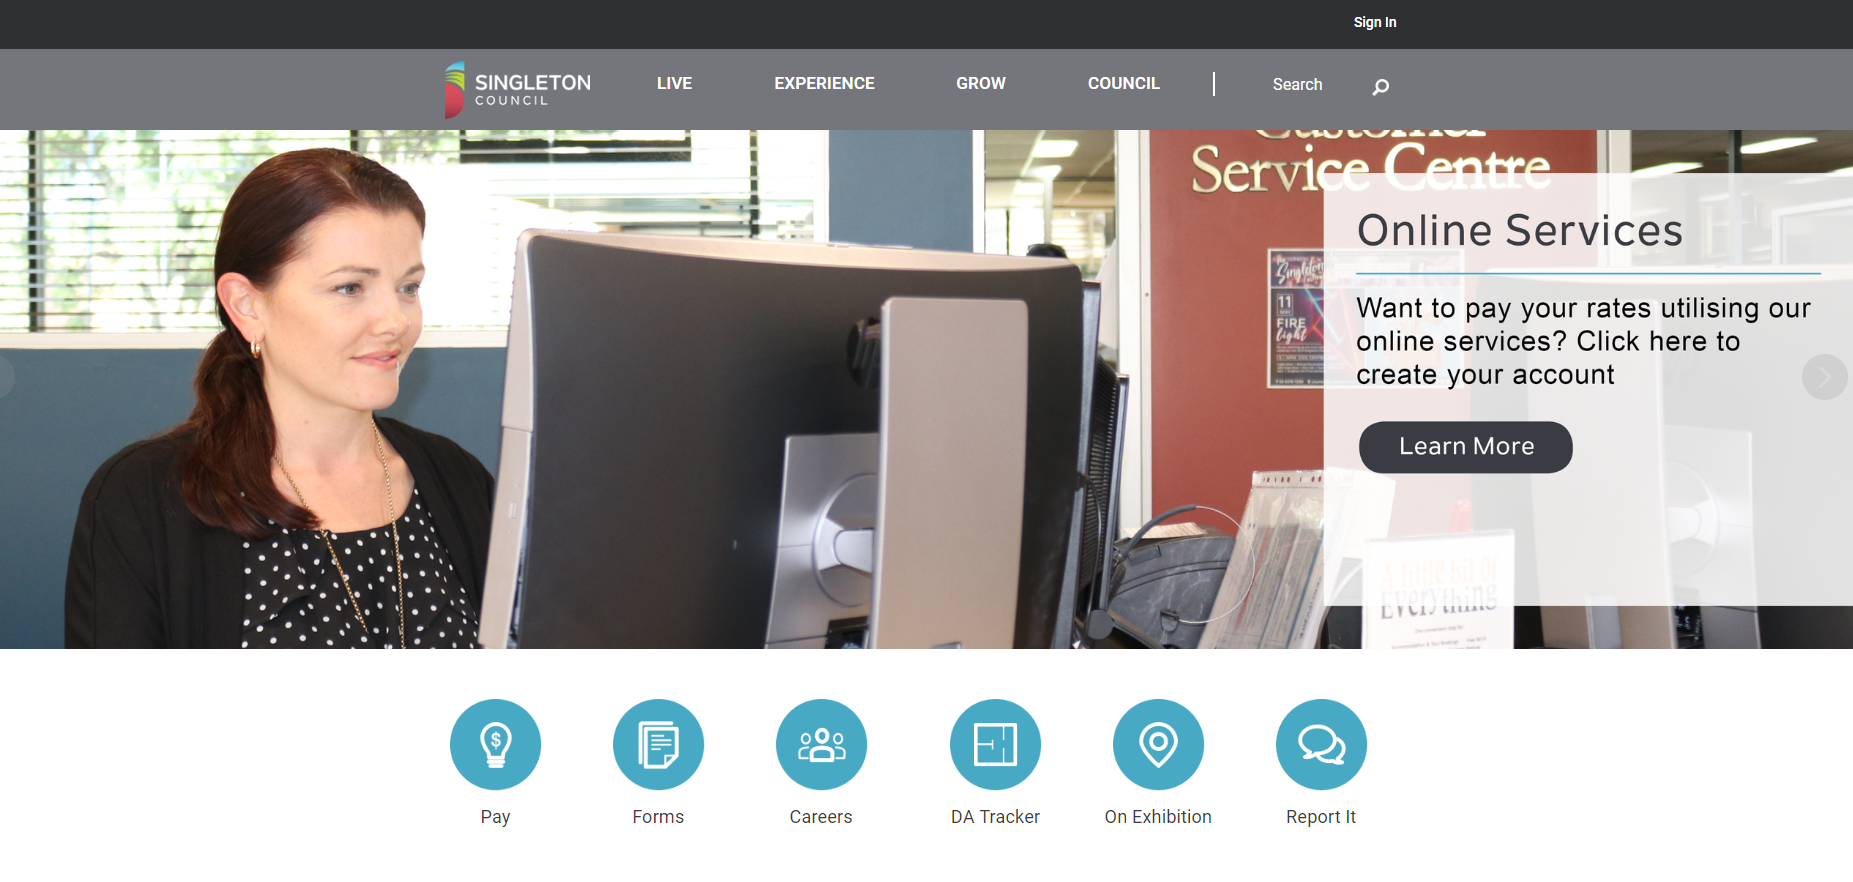 Singleton Council Home page.PNG